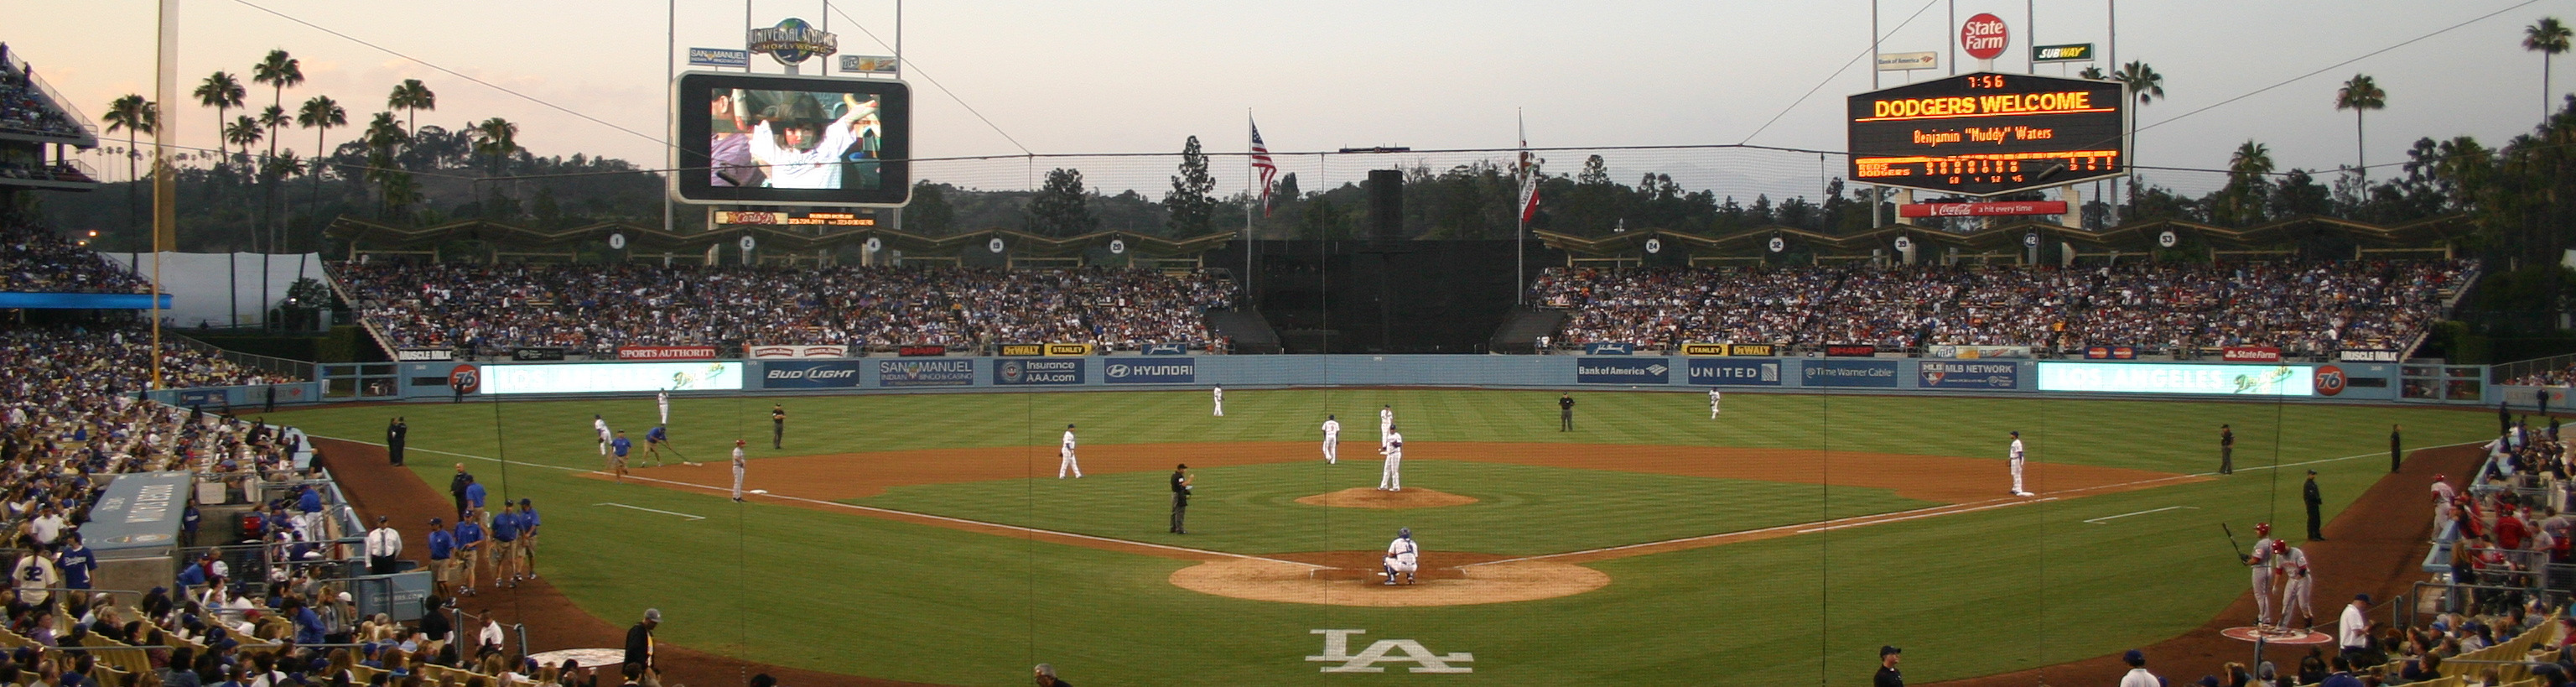 Dodger_Stadium_Field.jpg